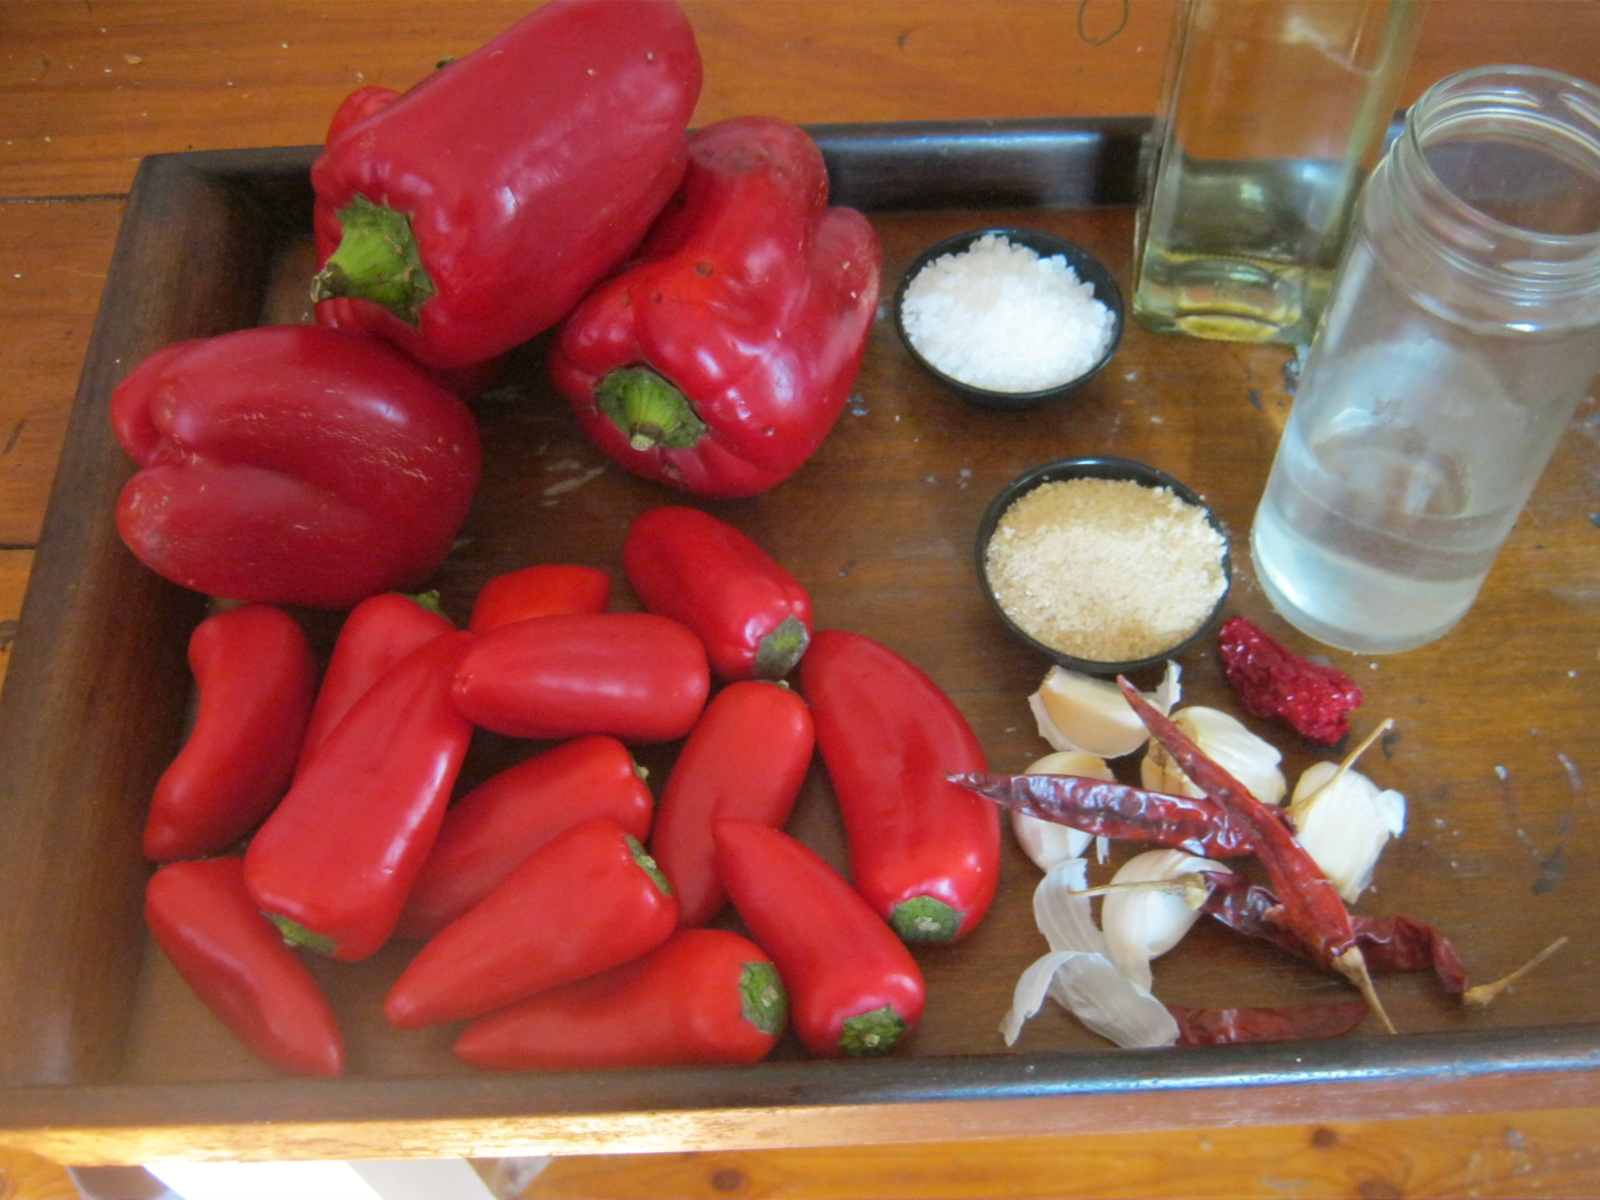 Ingredients for fermented hot pepper sauce